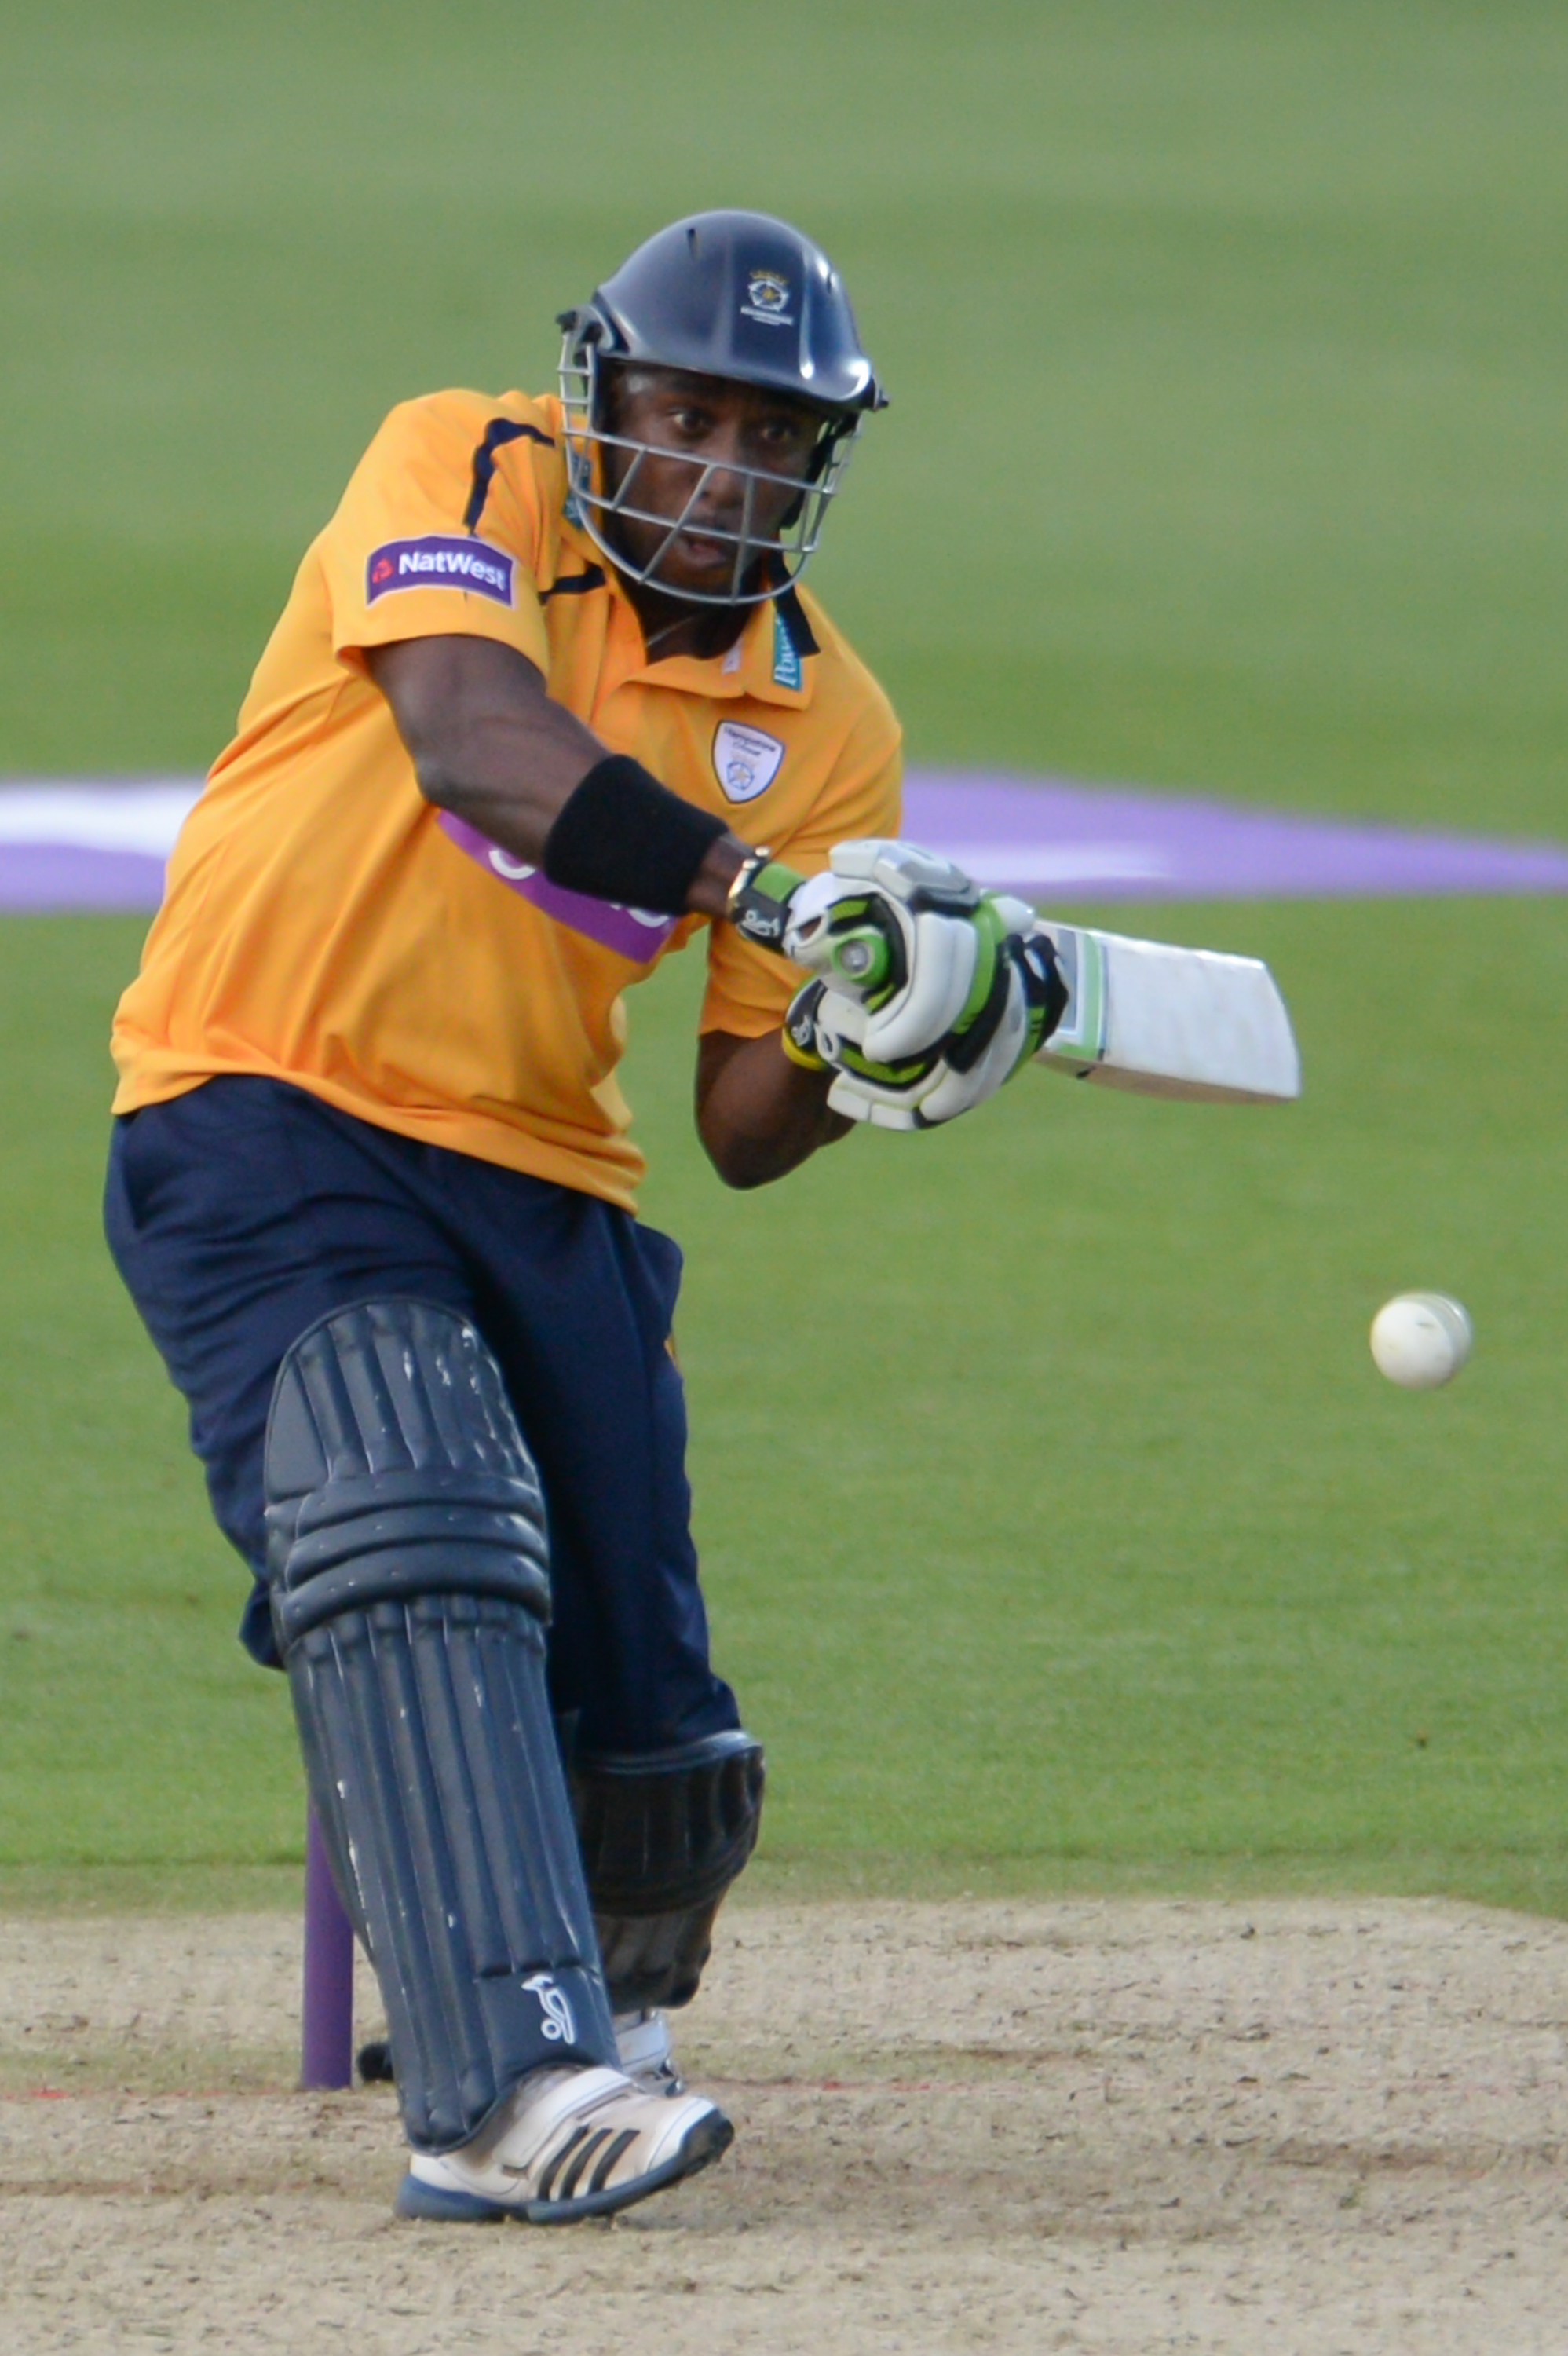 Hants top T20 group after latest win